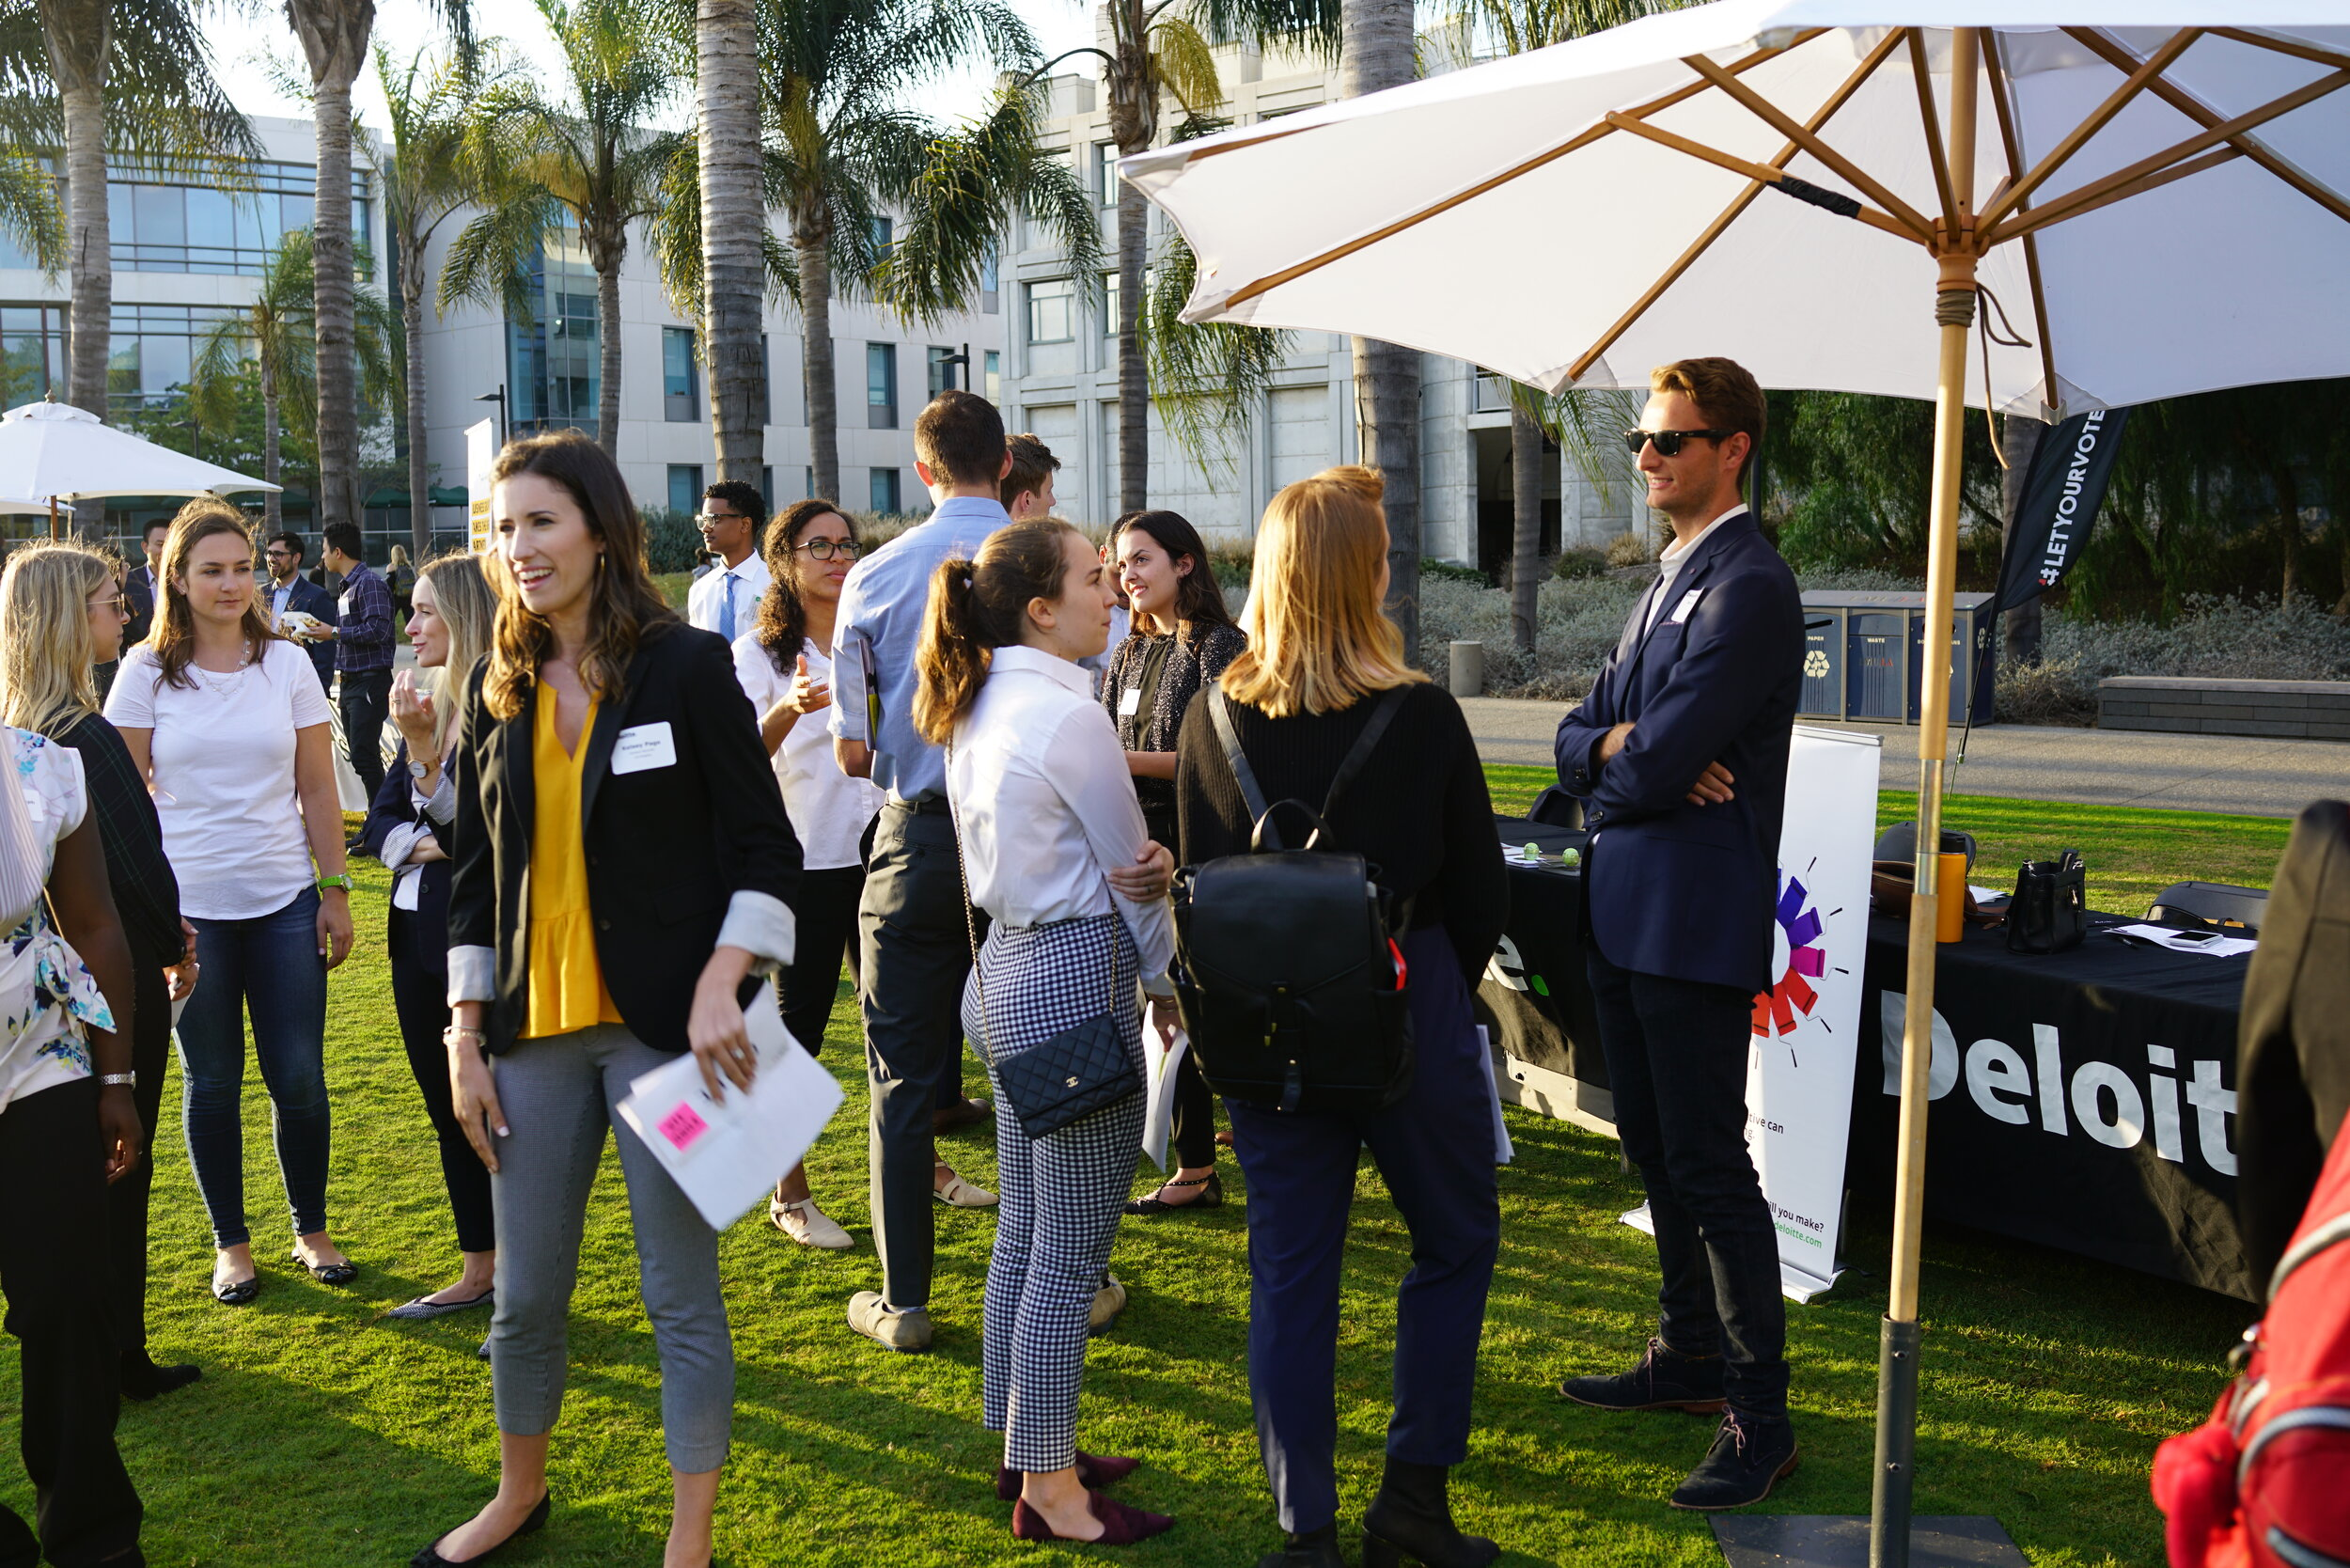 Meet the Firms - Members can network and socialize with professionals from 20+ accounting-related firms. A great way to connect with internships and other summer opportunities.